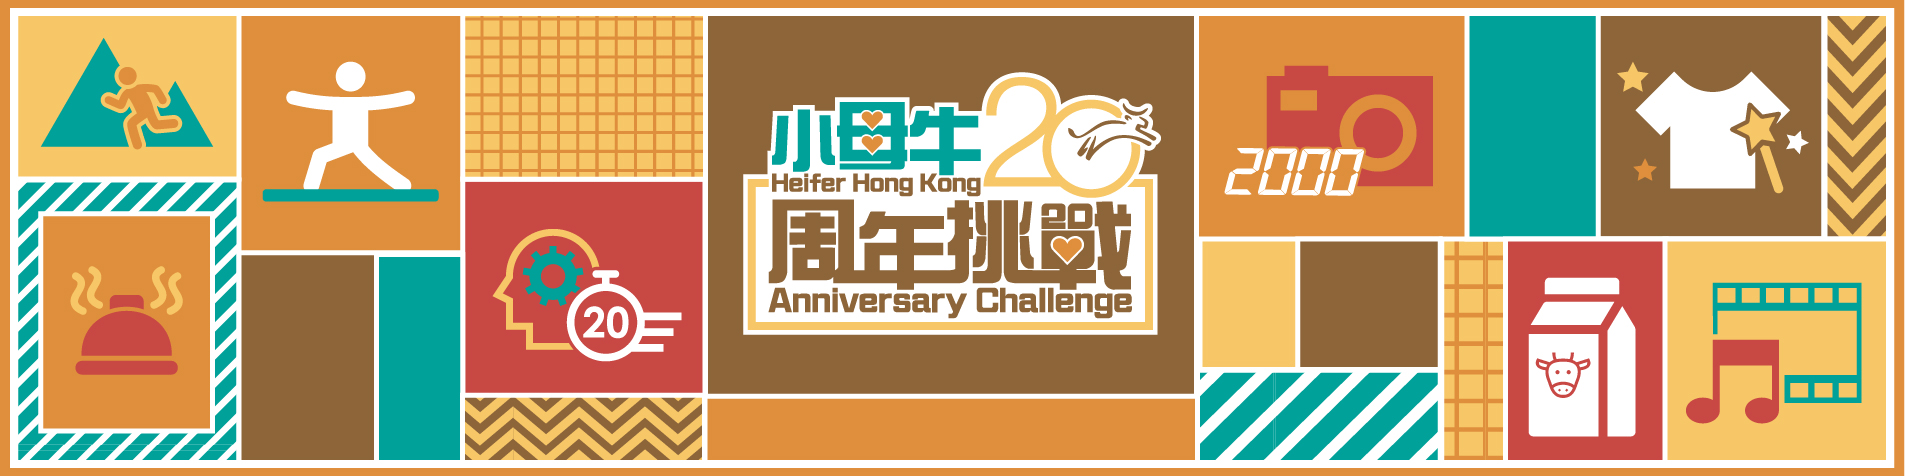 Heifer Hong Kong 20th Anniversary Challenge